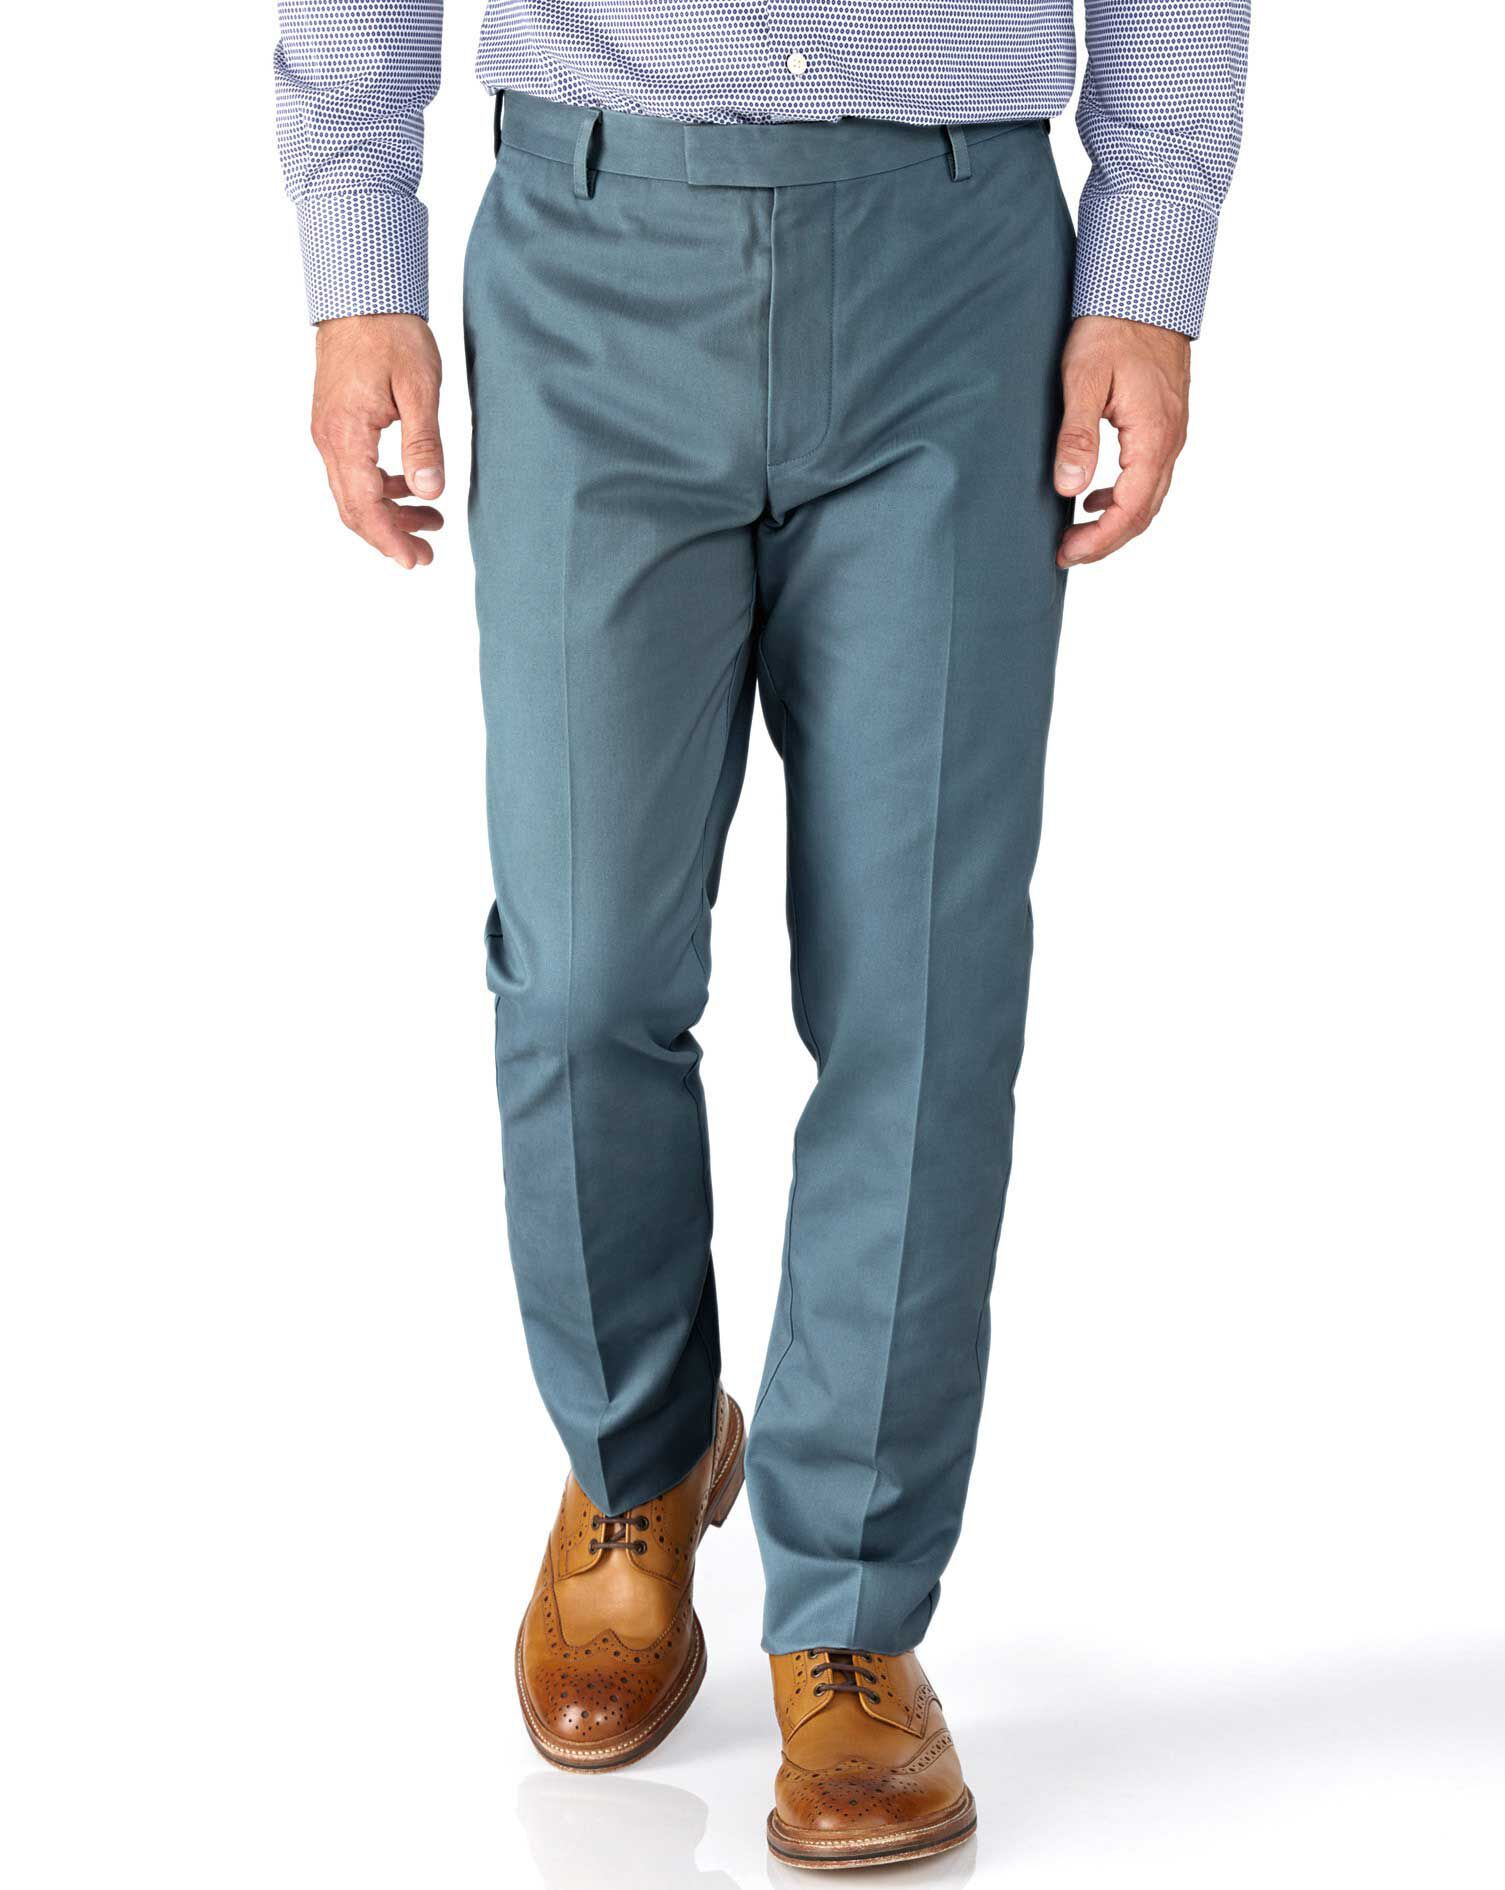 Airforce Blue Slim Fit Flat Front Non-Iron Cotton Chino Trousers Size W34 L30 by Charles Tyrwhitt